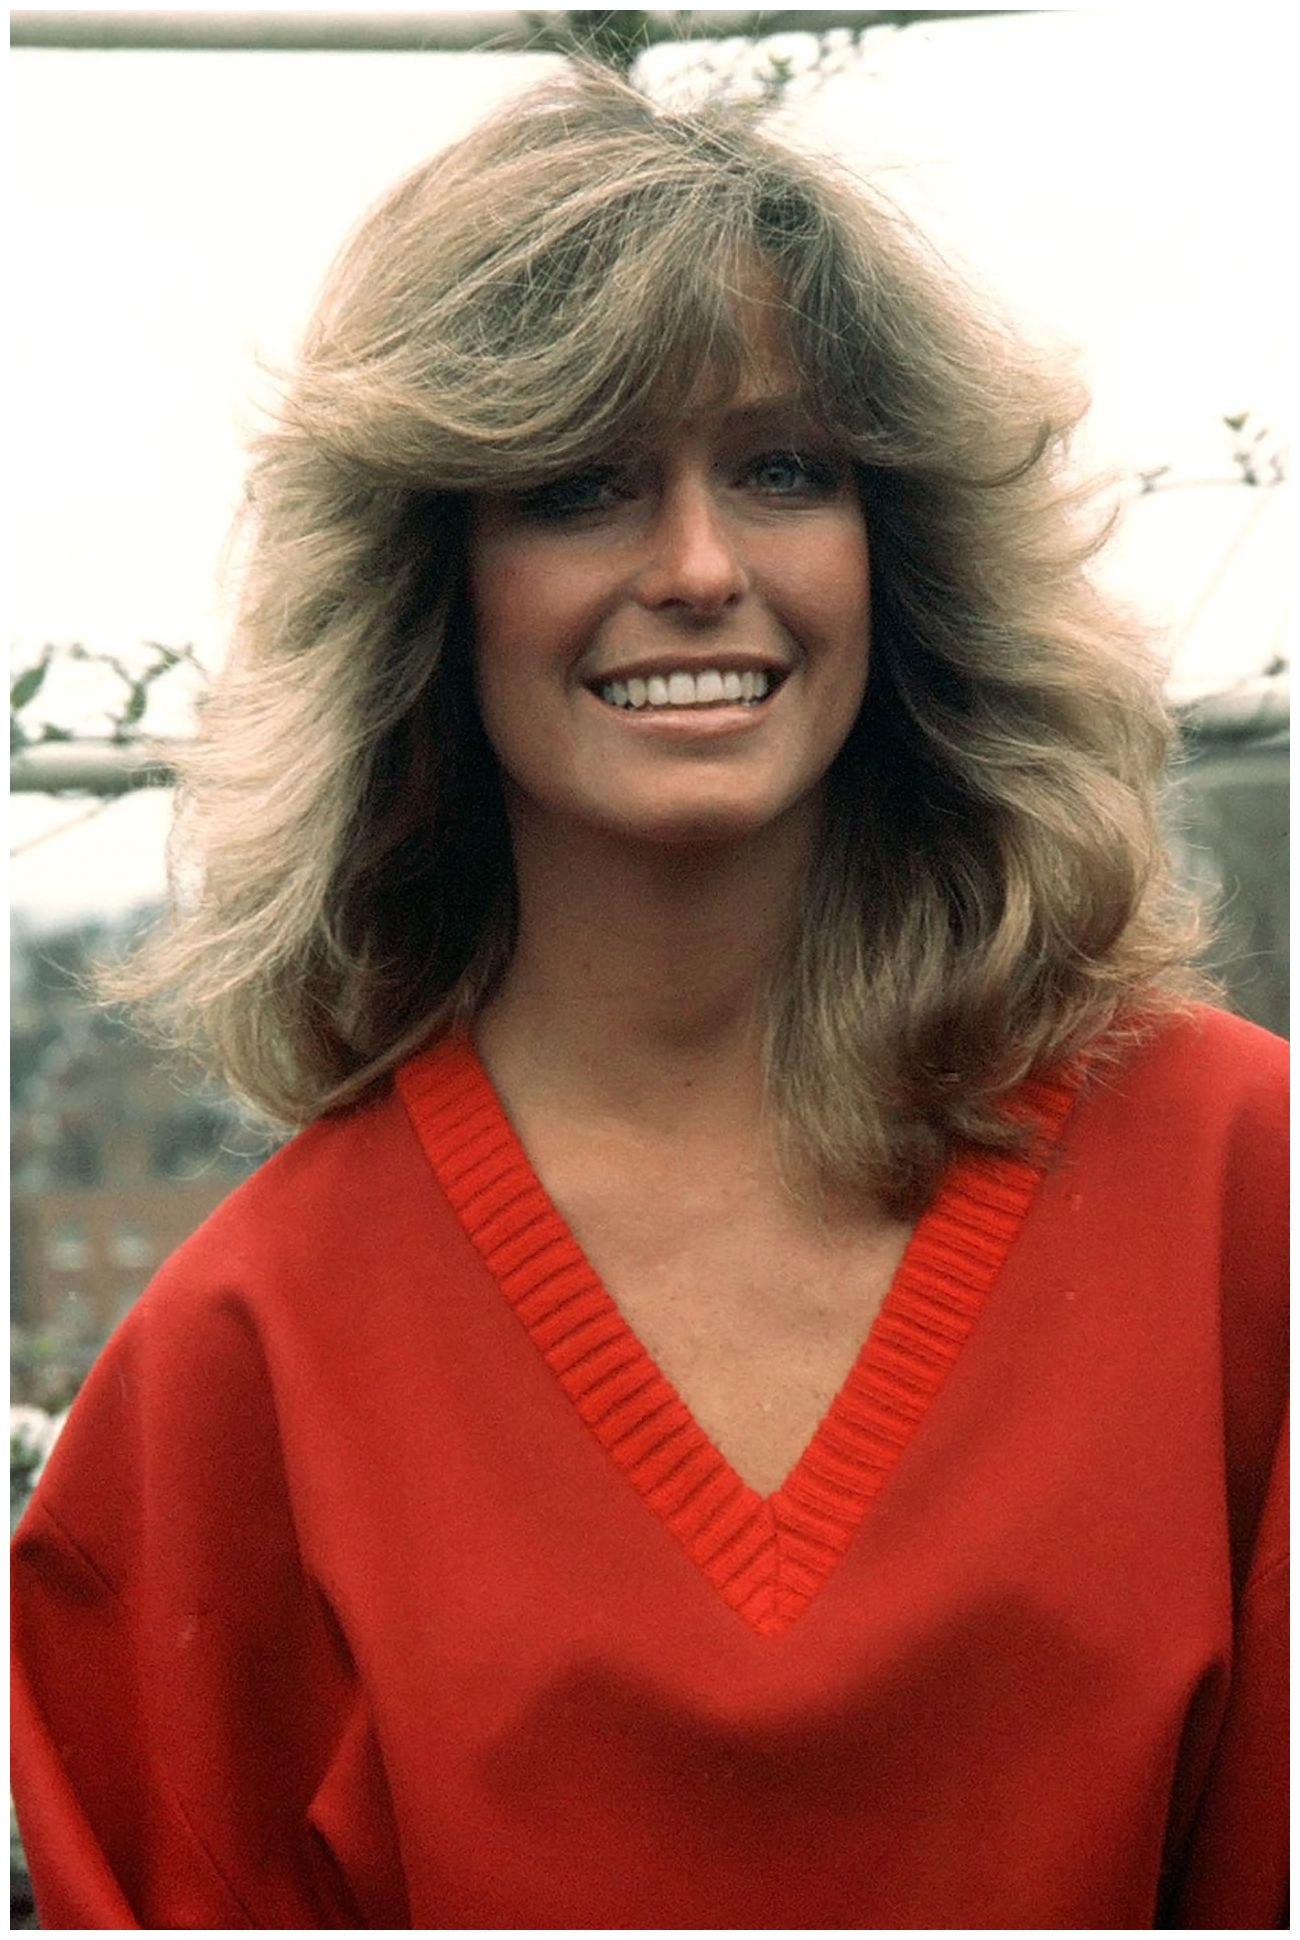 Farrah Fawcett | © Pleasurephoto